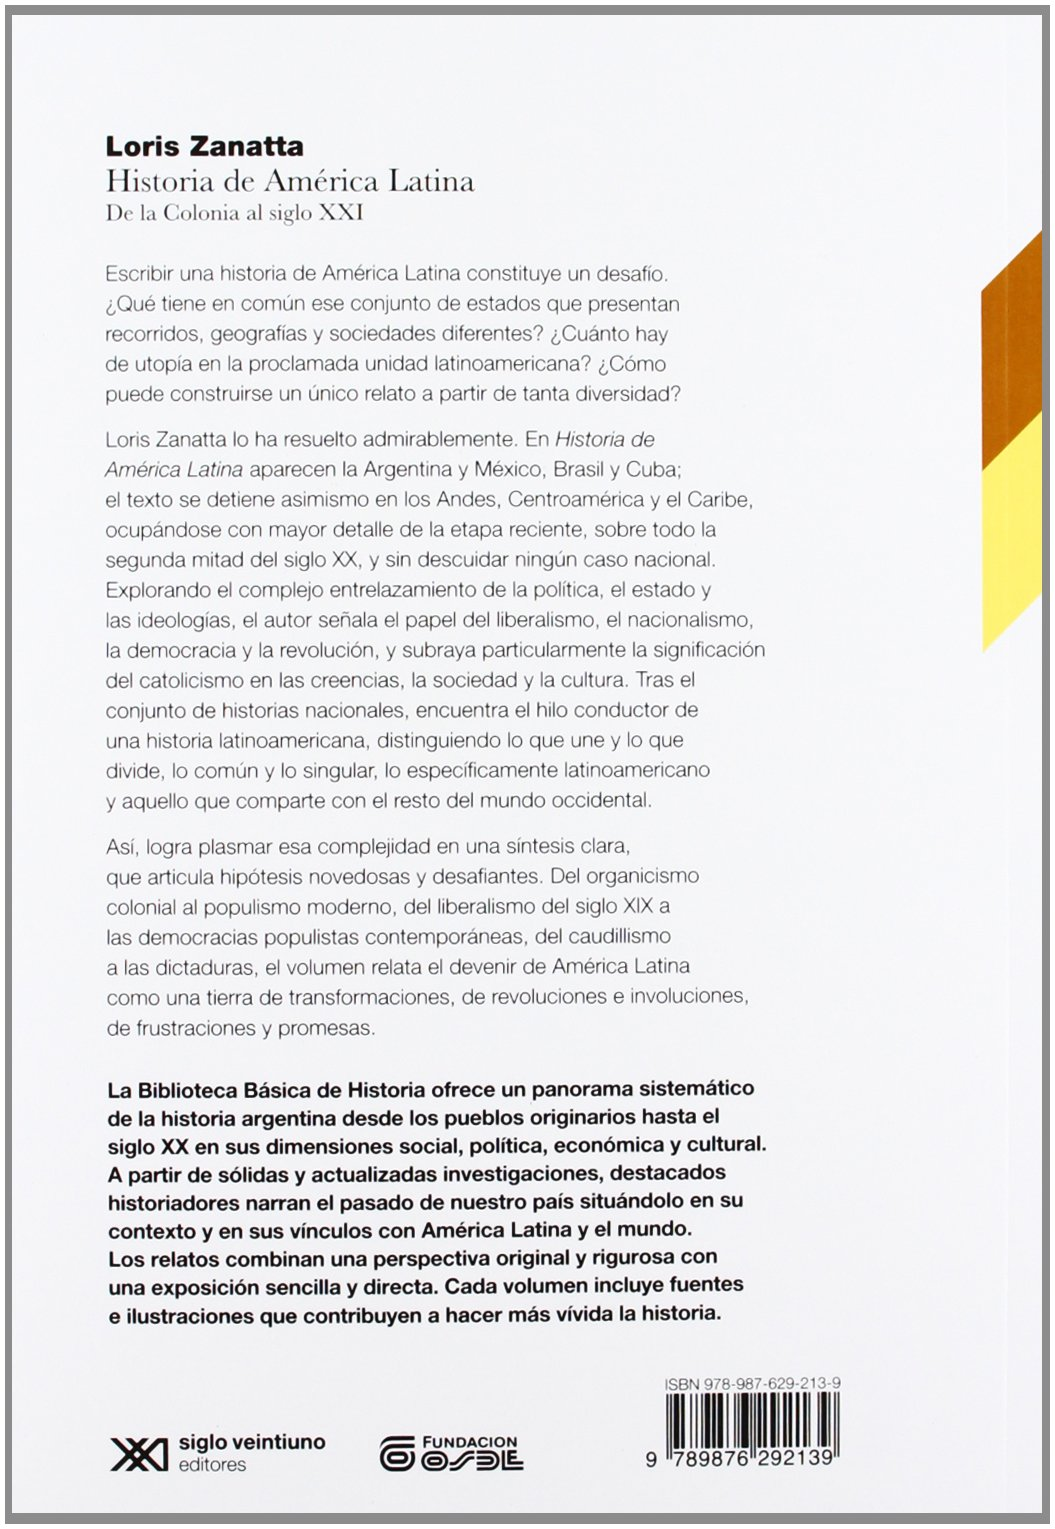 De la colonia al siglo XXI (Spanish Edition): Loris Zanatta: 9789876292139: Amazon.com: Books